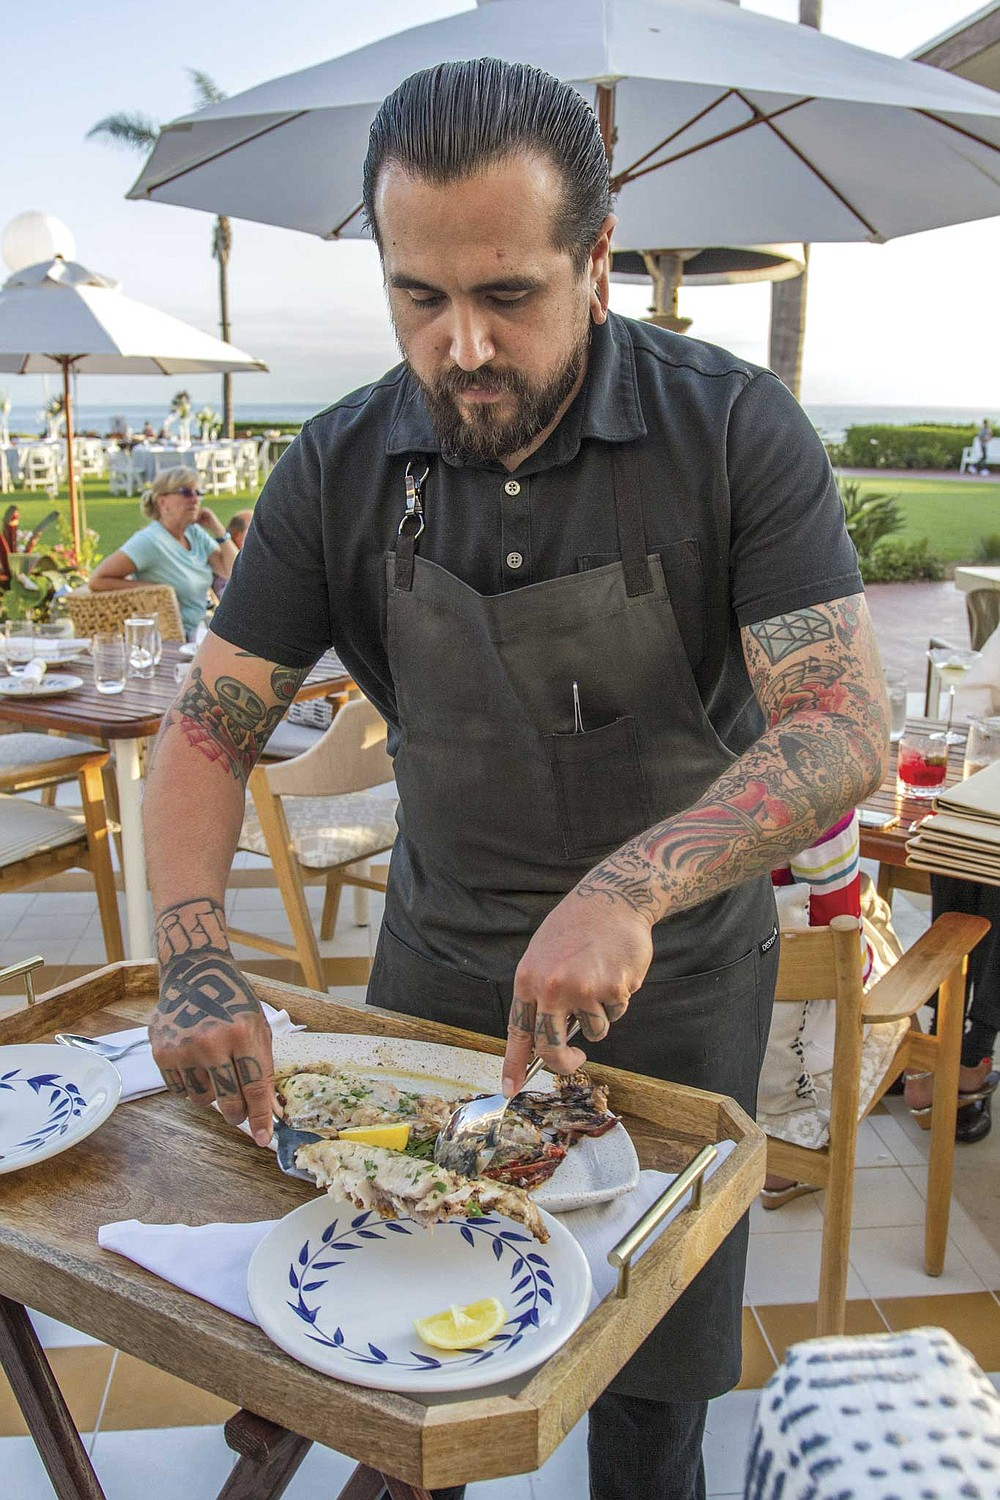 Serẽa's signature preparation is a grilled whole fish for two, fileted tableside by your server, delivering warm, cleanly cut portions of very recent, very local catch. Say, a rockfish caught by John Law, its meaty, flaky white fish glistening with olive oil.